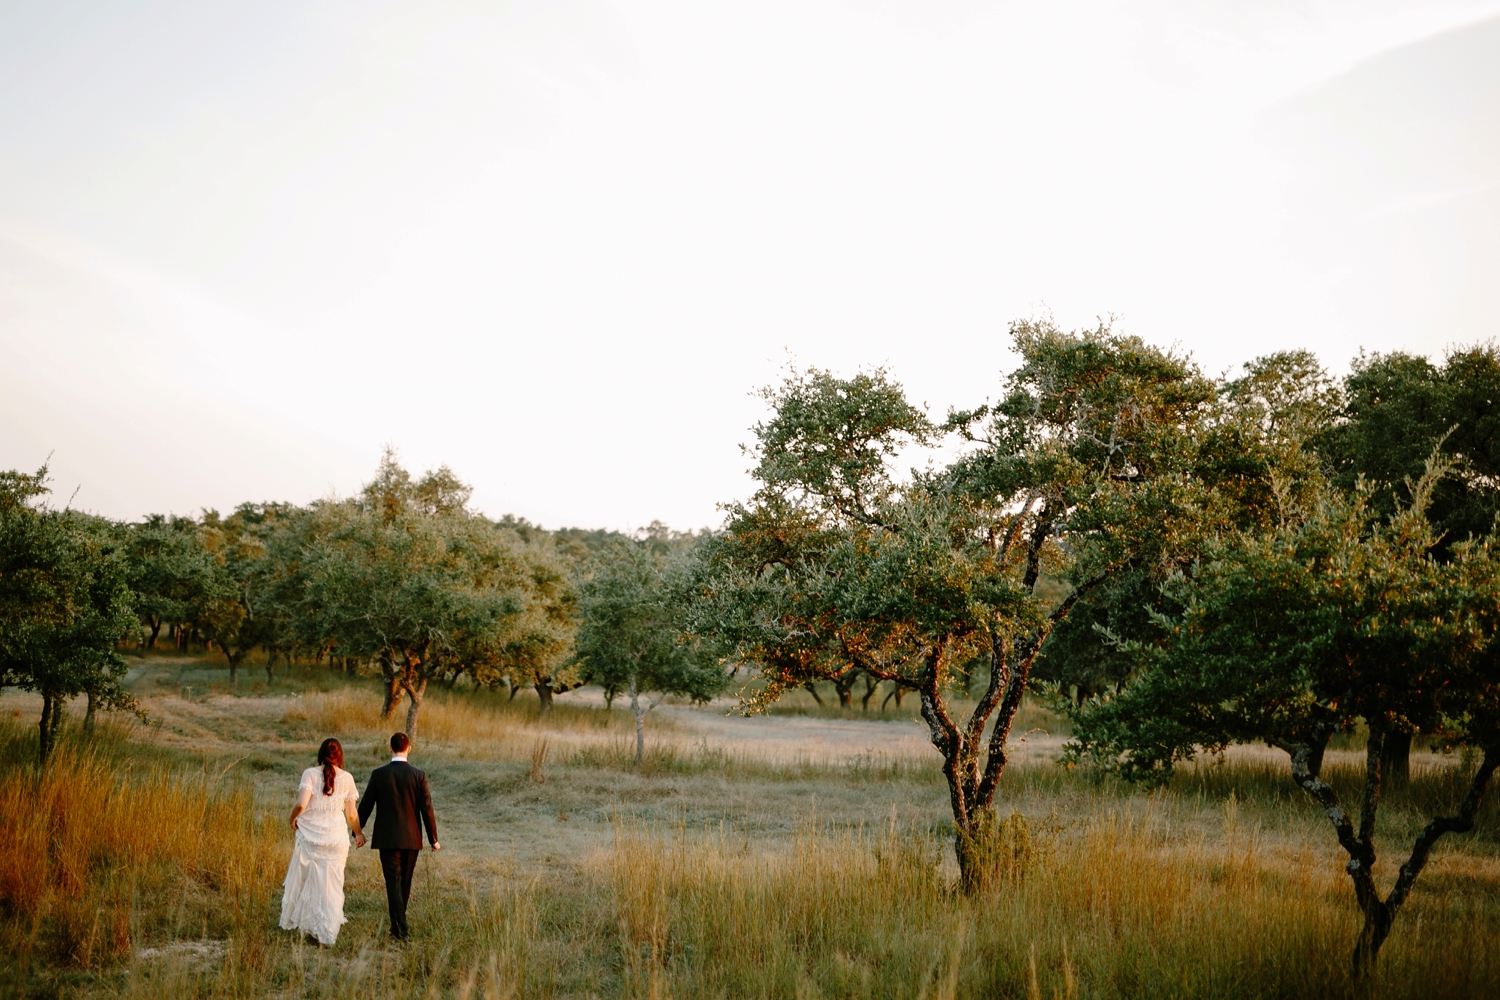 hill-country-texas-wedding-0116